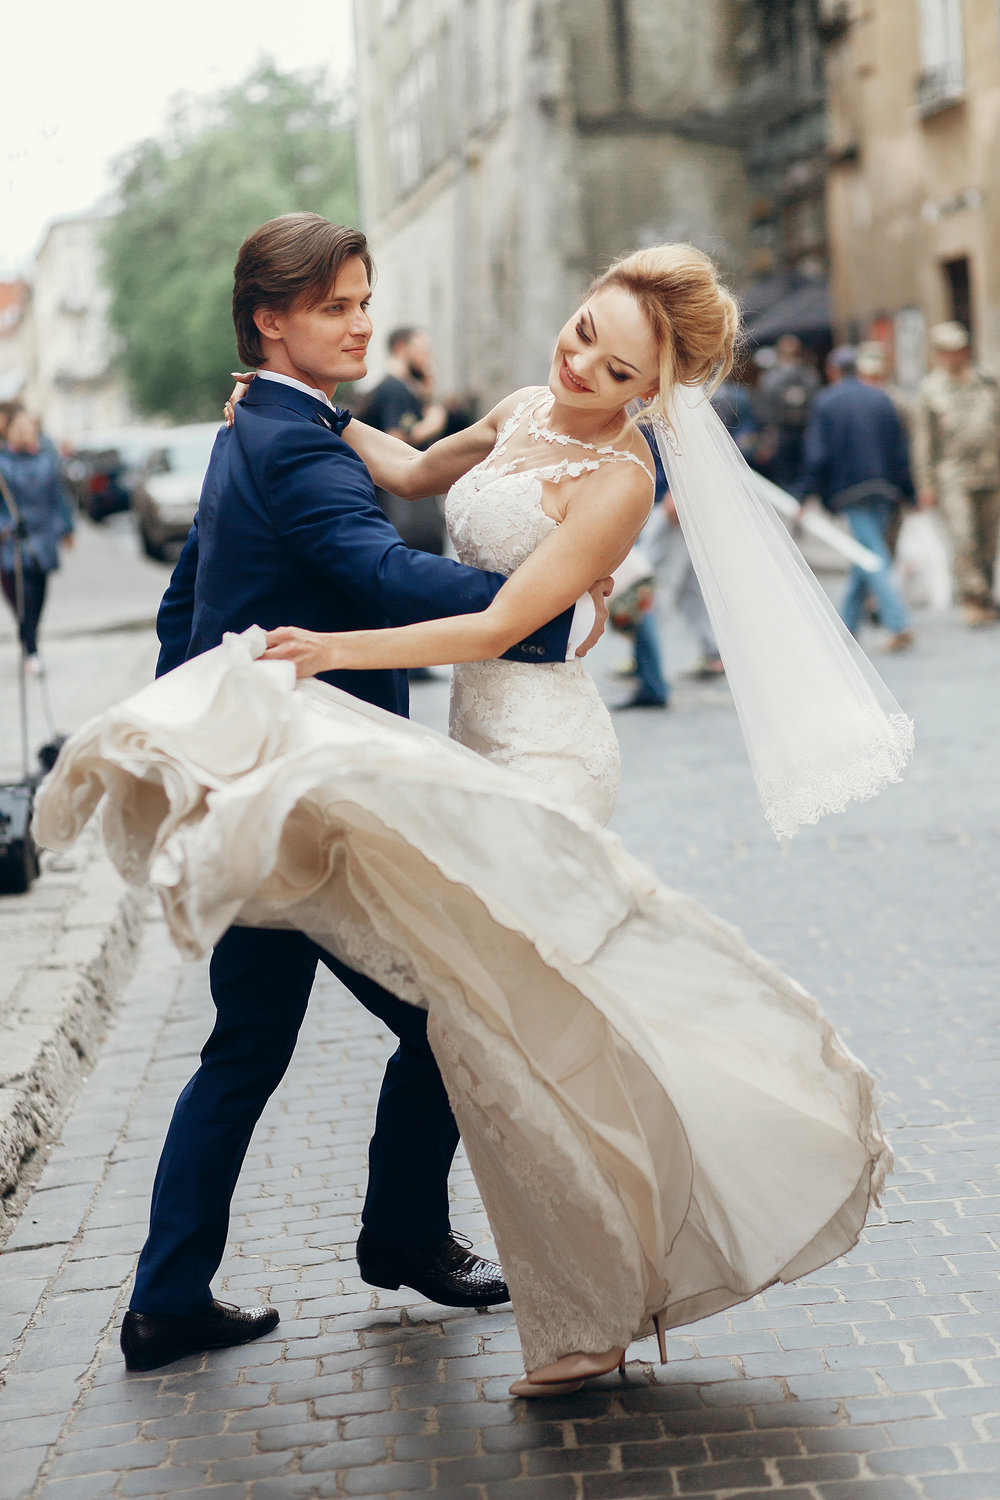 Newlywed Couple Dancing In The Street, Happy Emotional Bride Dan